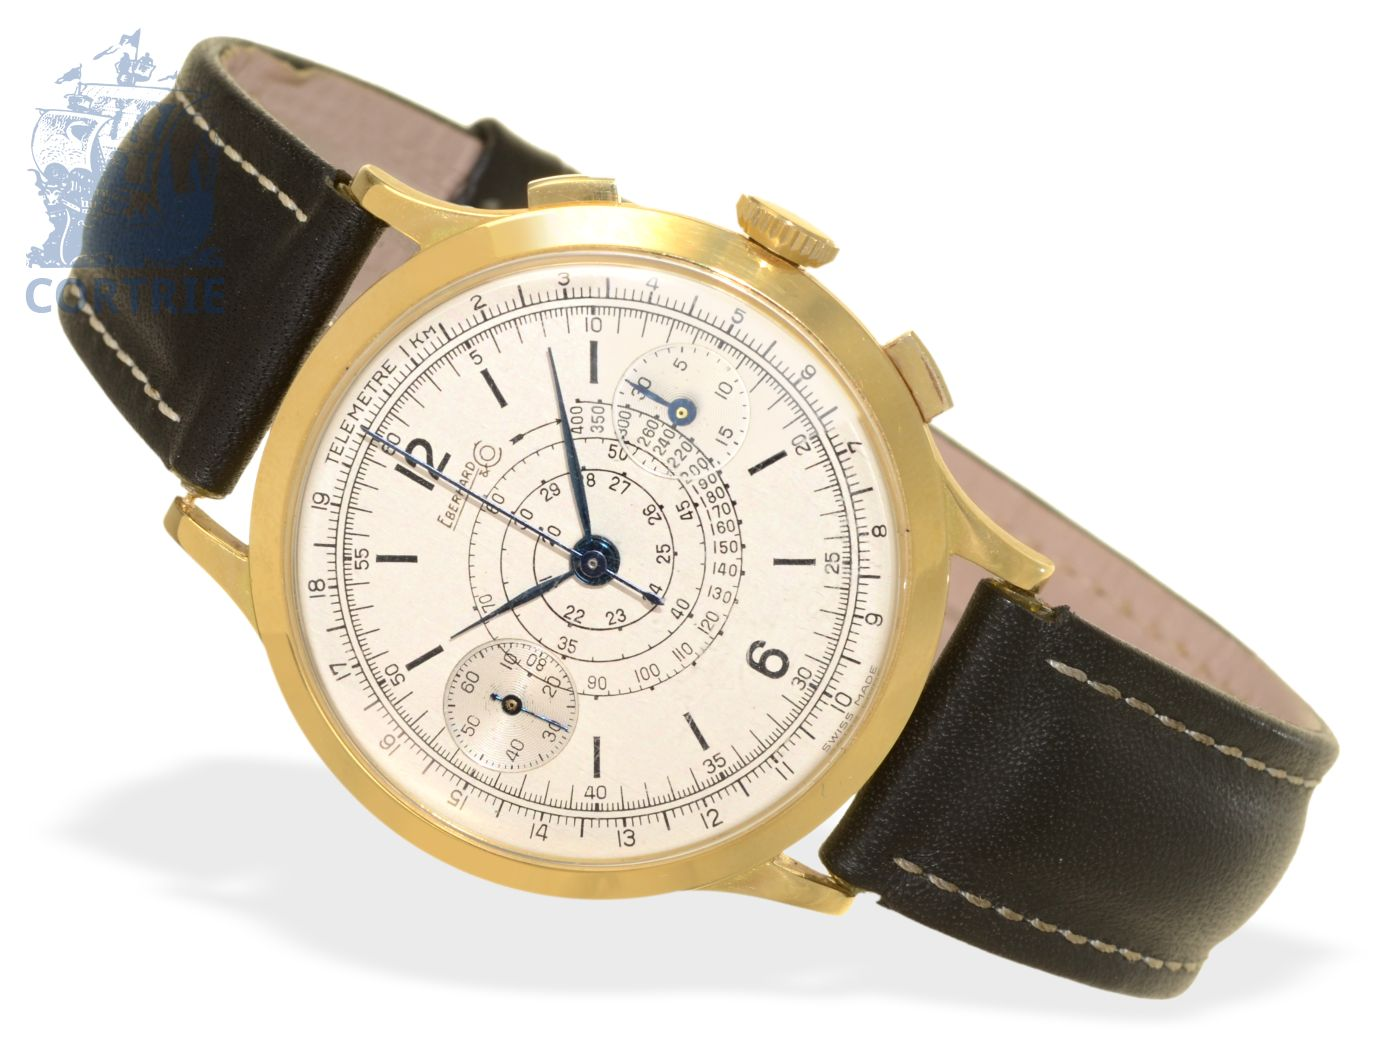 Wristwatch: big Eberhard telemeter chronograph, 18 K gold, ca. 1950-